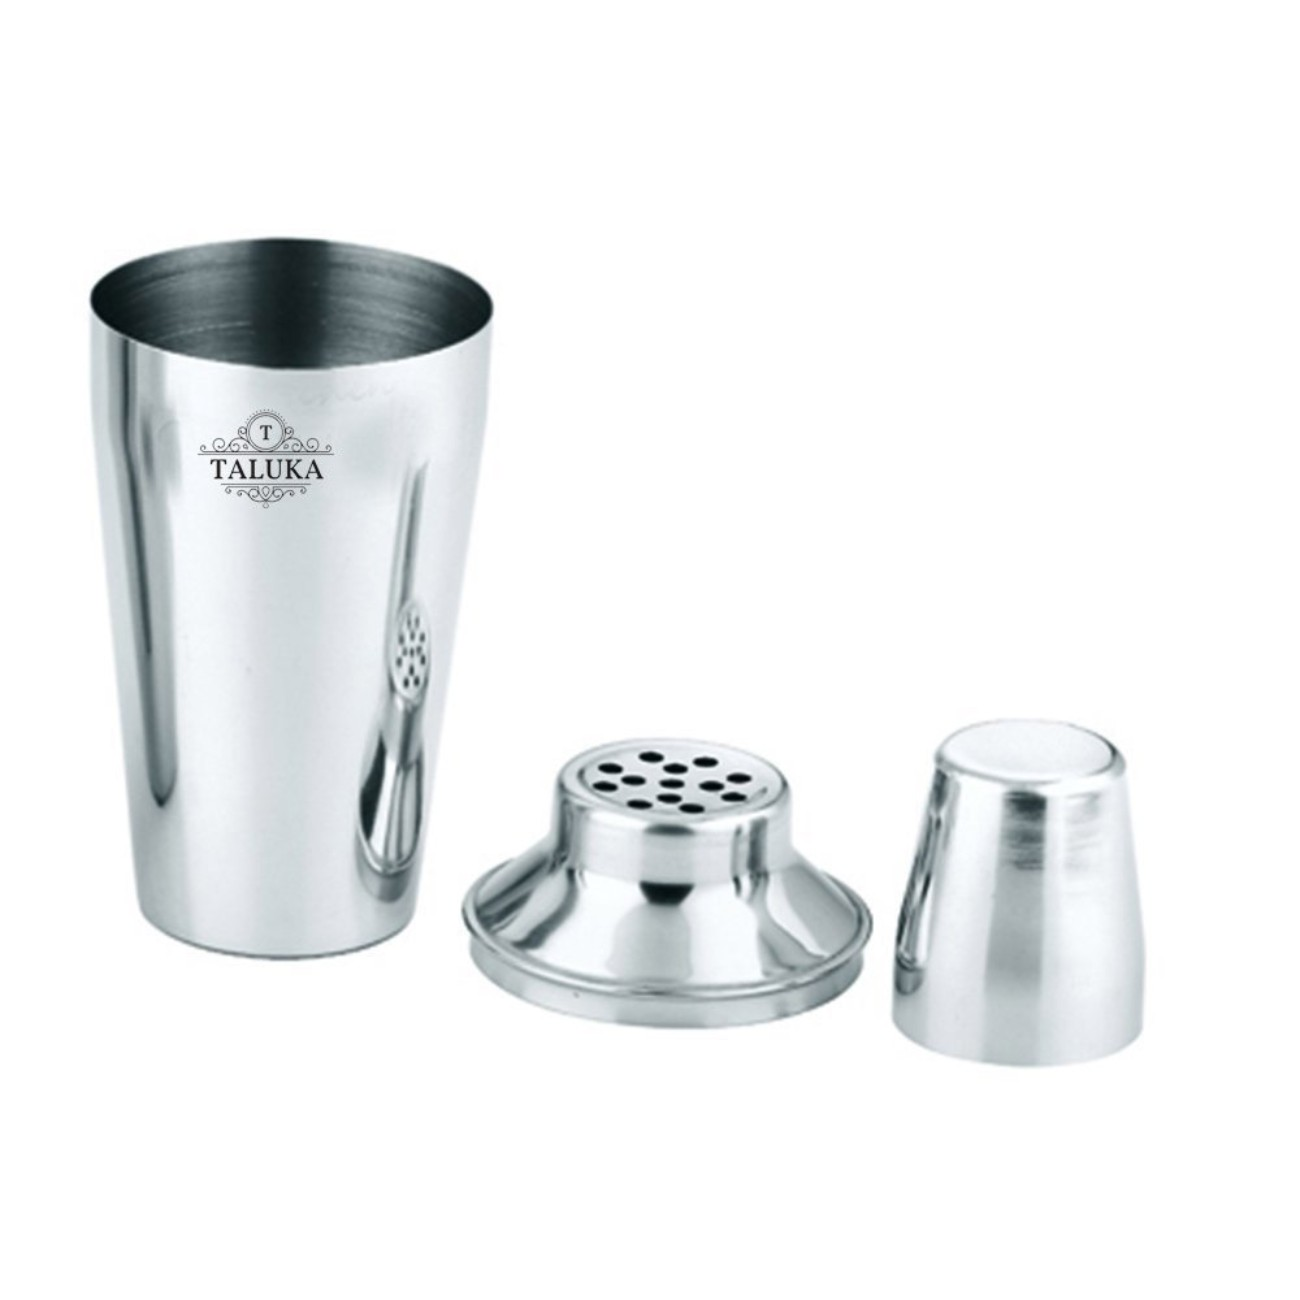 Stainless Steel Mocktail Juices Mixing & Serving Wine Cocktail Wine Shaker 750 ML